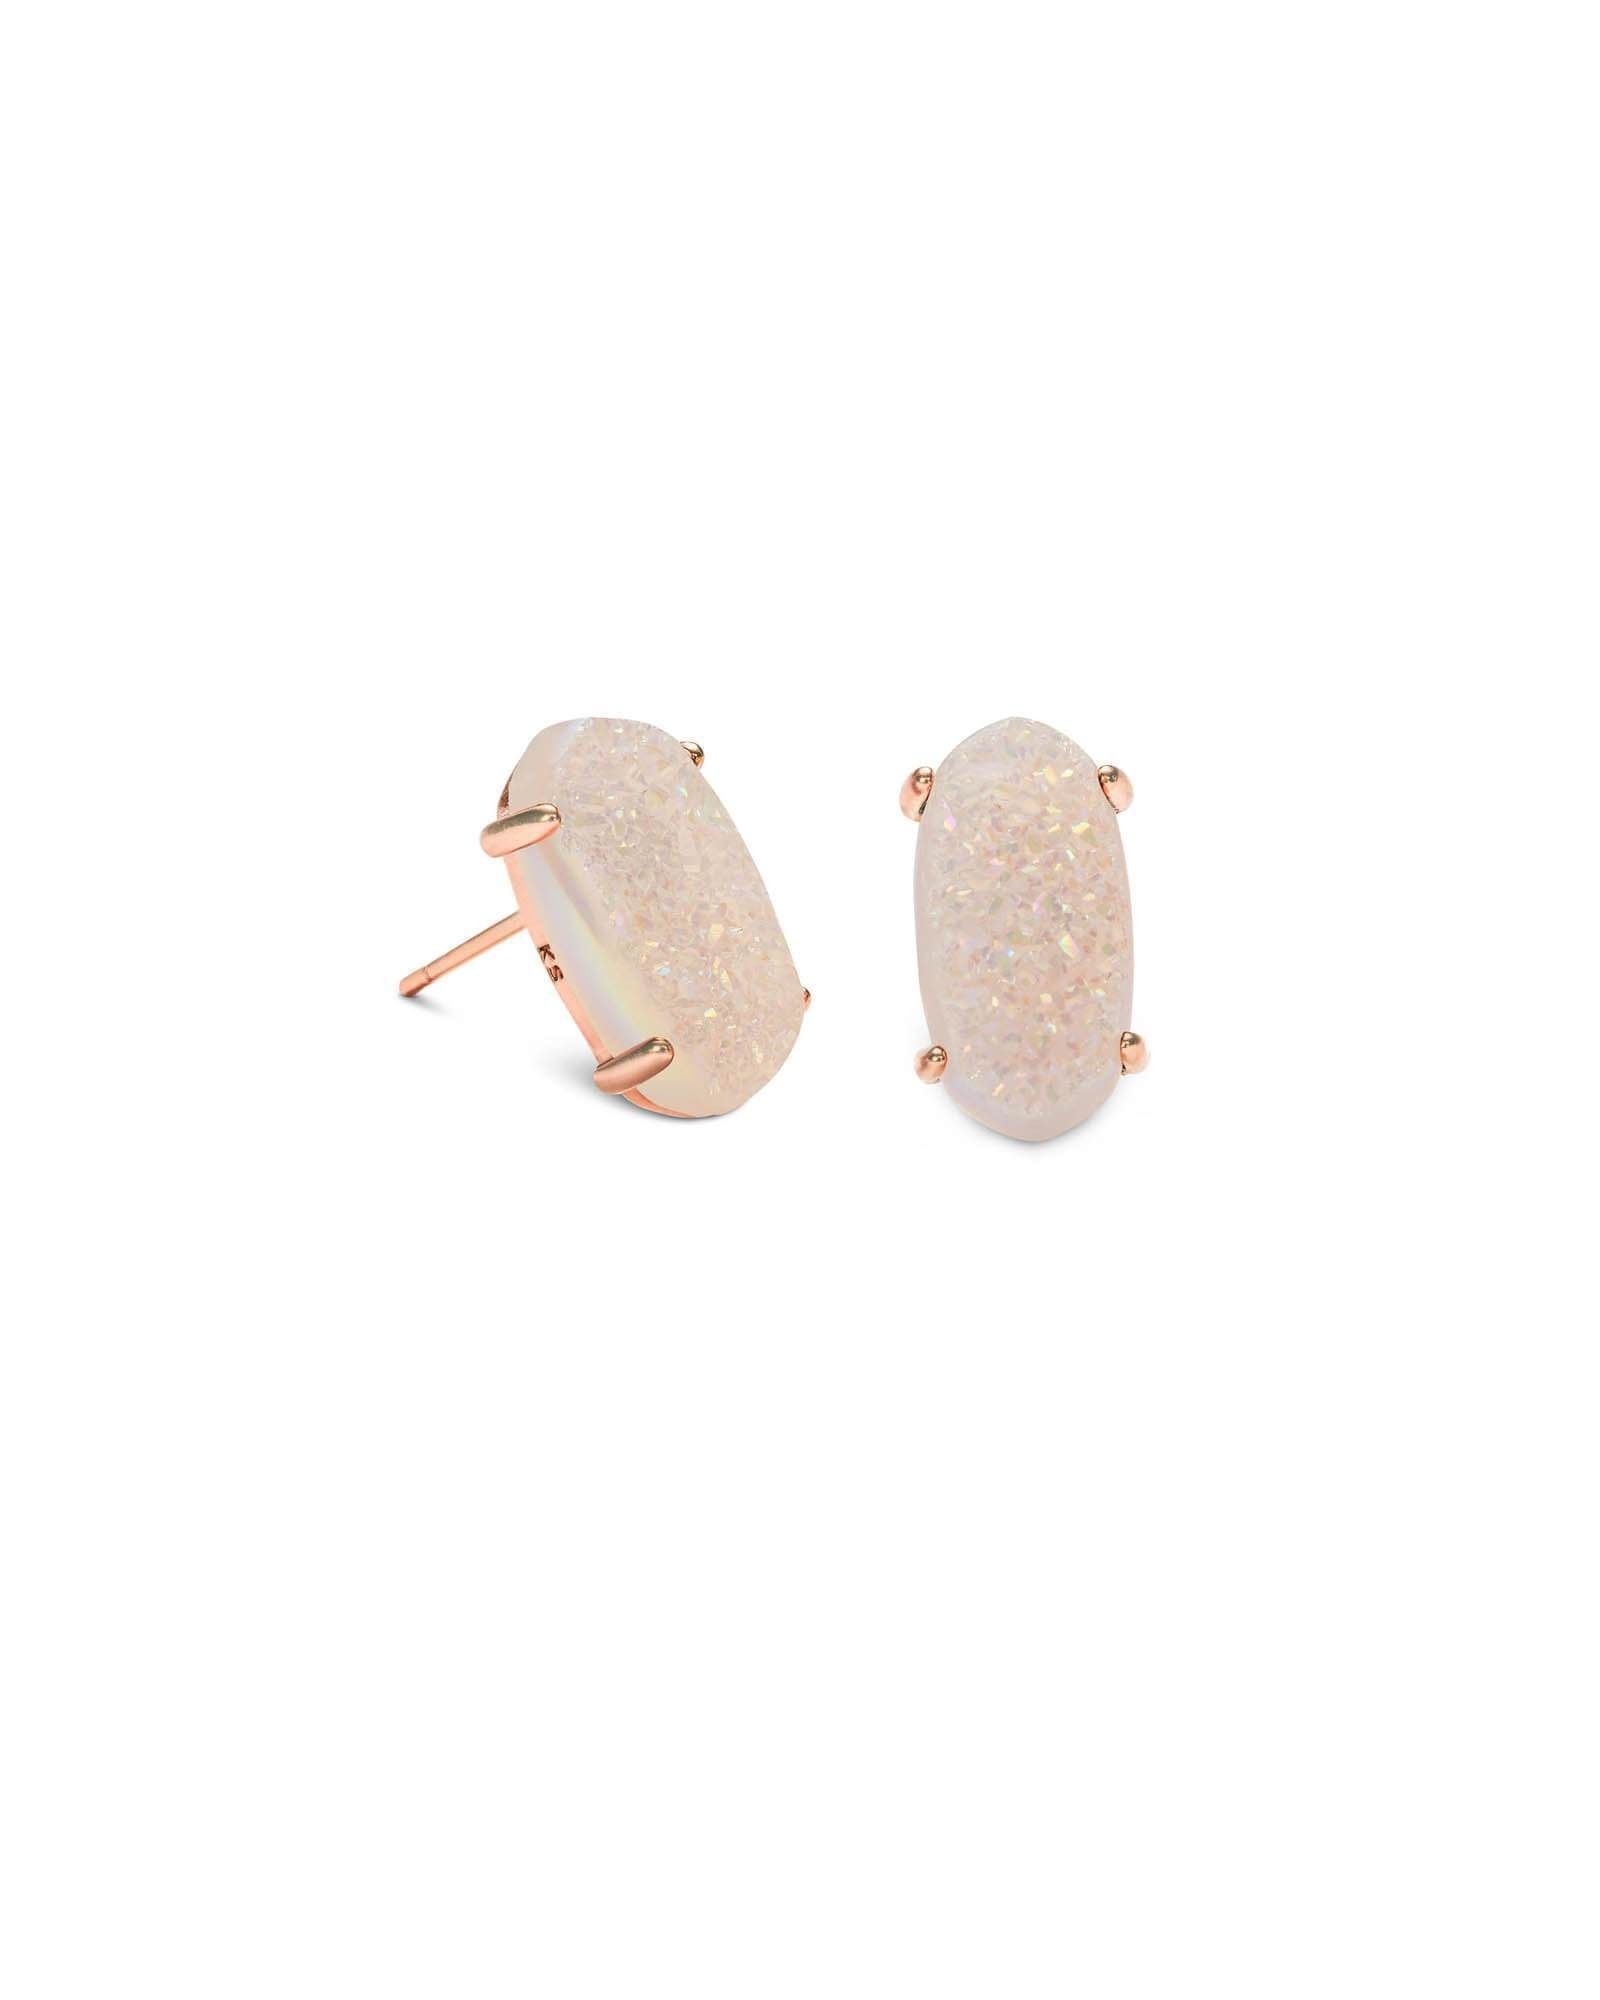 8e4eaff31a3cf Kendra Scott Betty Earring in 2019 | Kendra scott | Earrings ...